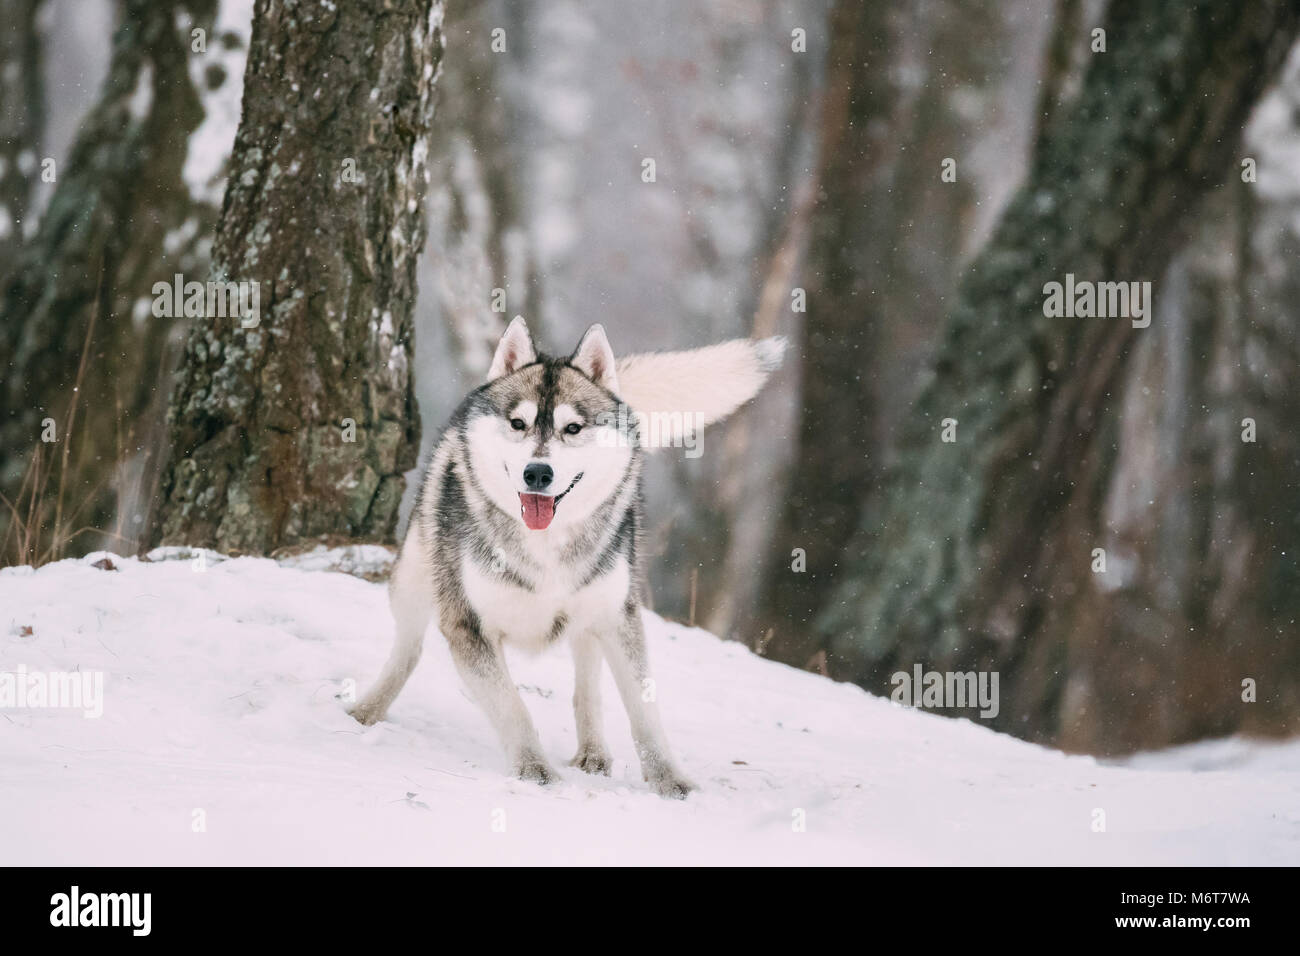 Siberian Husky Dog Running Outdoor In Snowy Field At Winter Day. - Stock Image